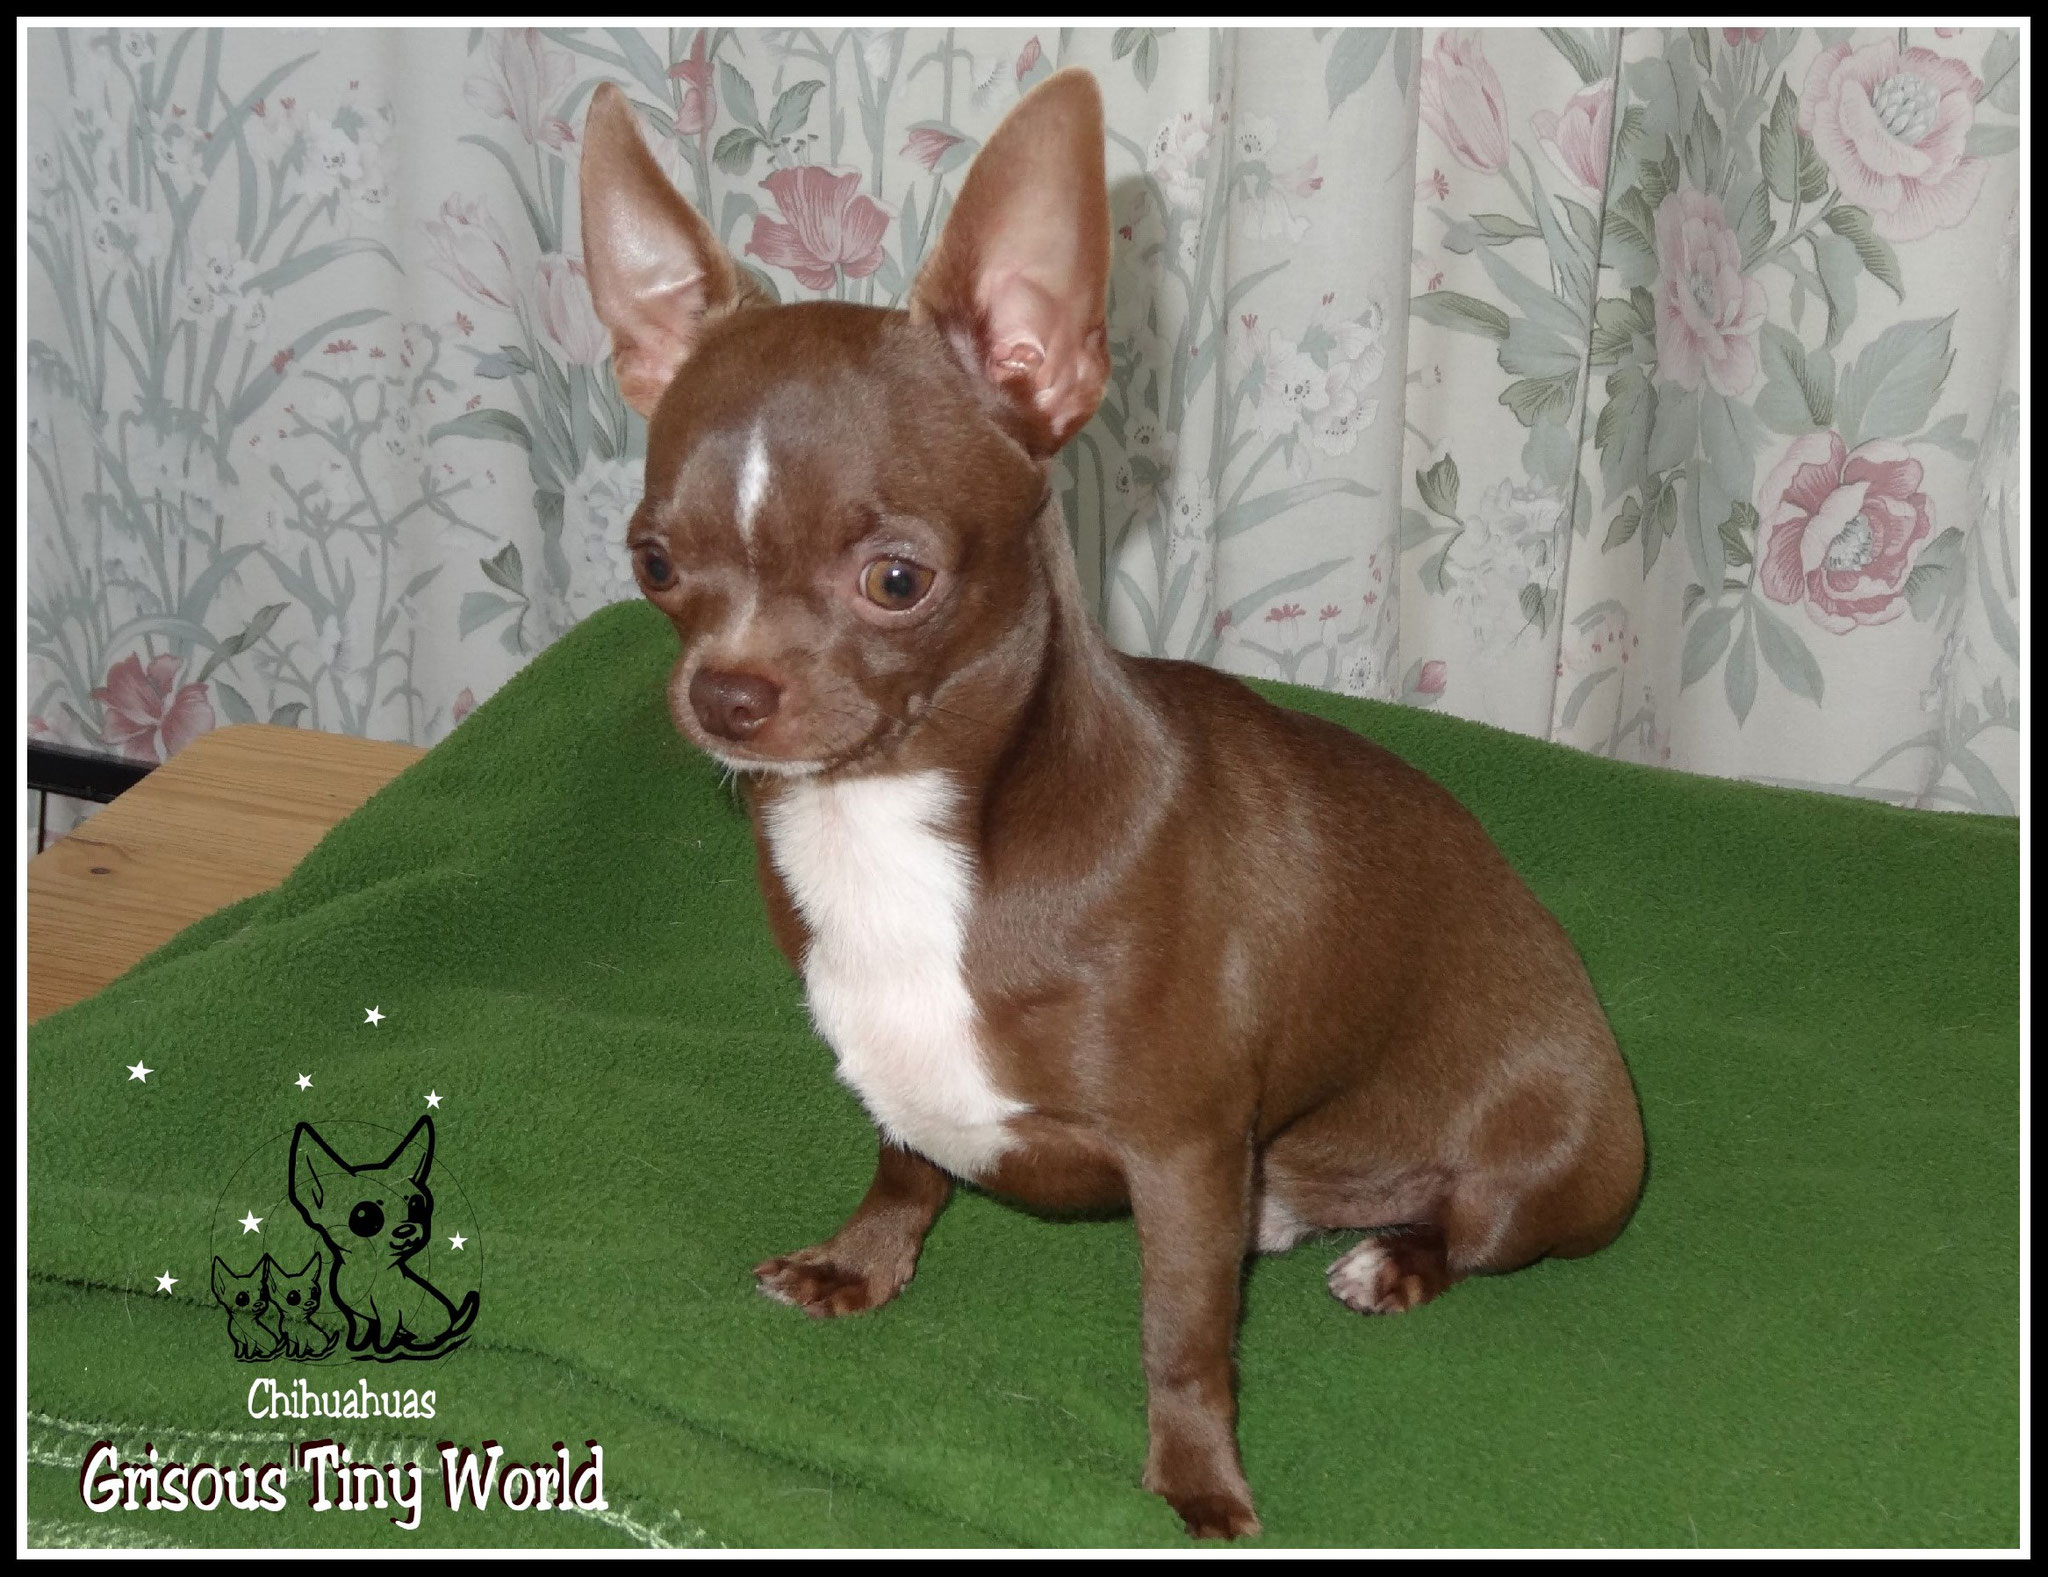 My Sweet Cookie, jeune mâle Chihuahua de l'élevage du Grisous'Tiny World